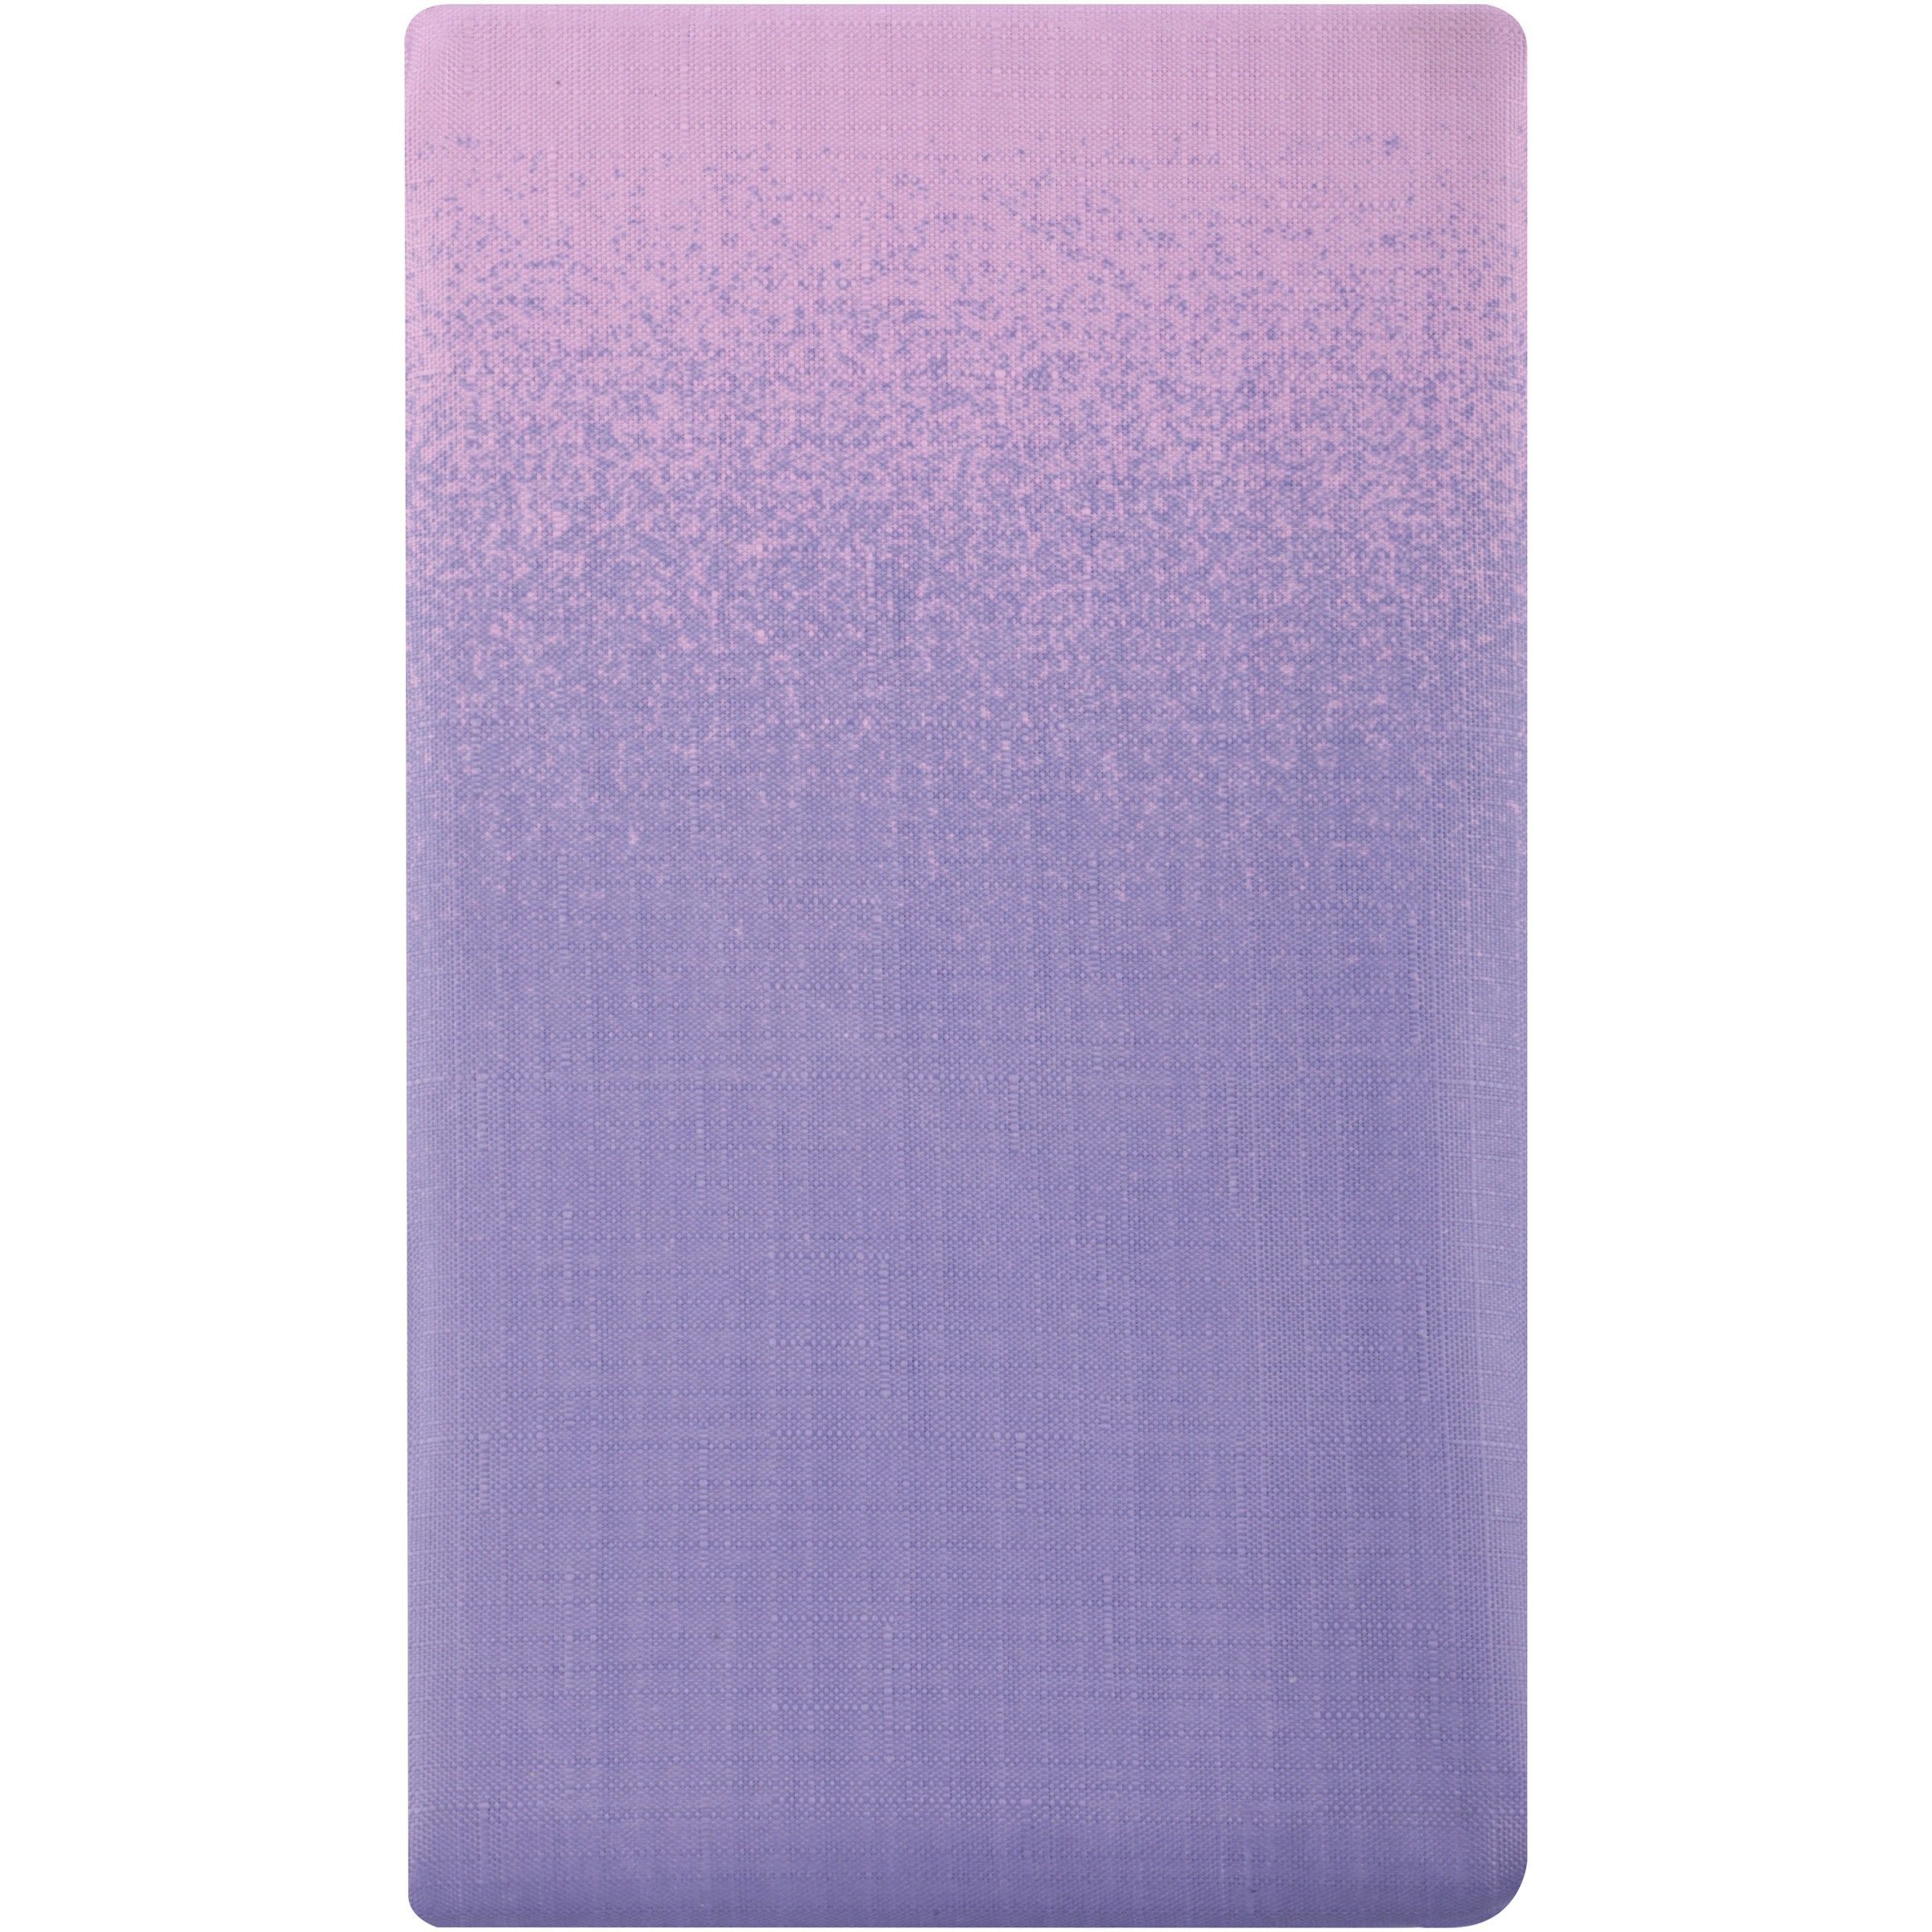 Mainstays Purple Ombre Fabric Shower Curtain by Wal-Mart Stores, Inc.